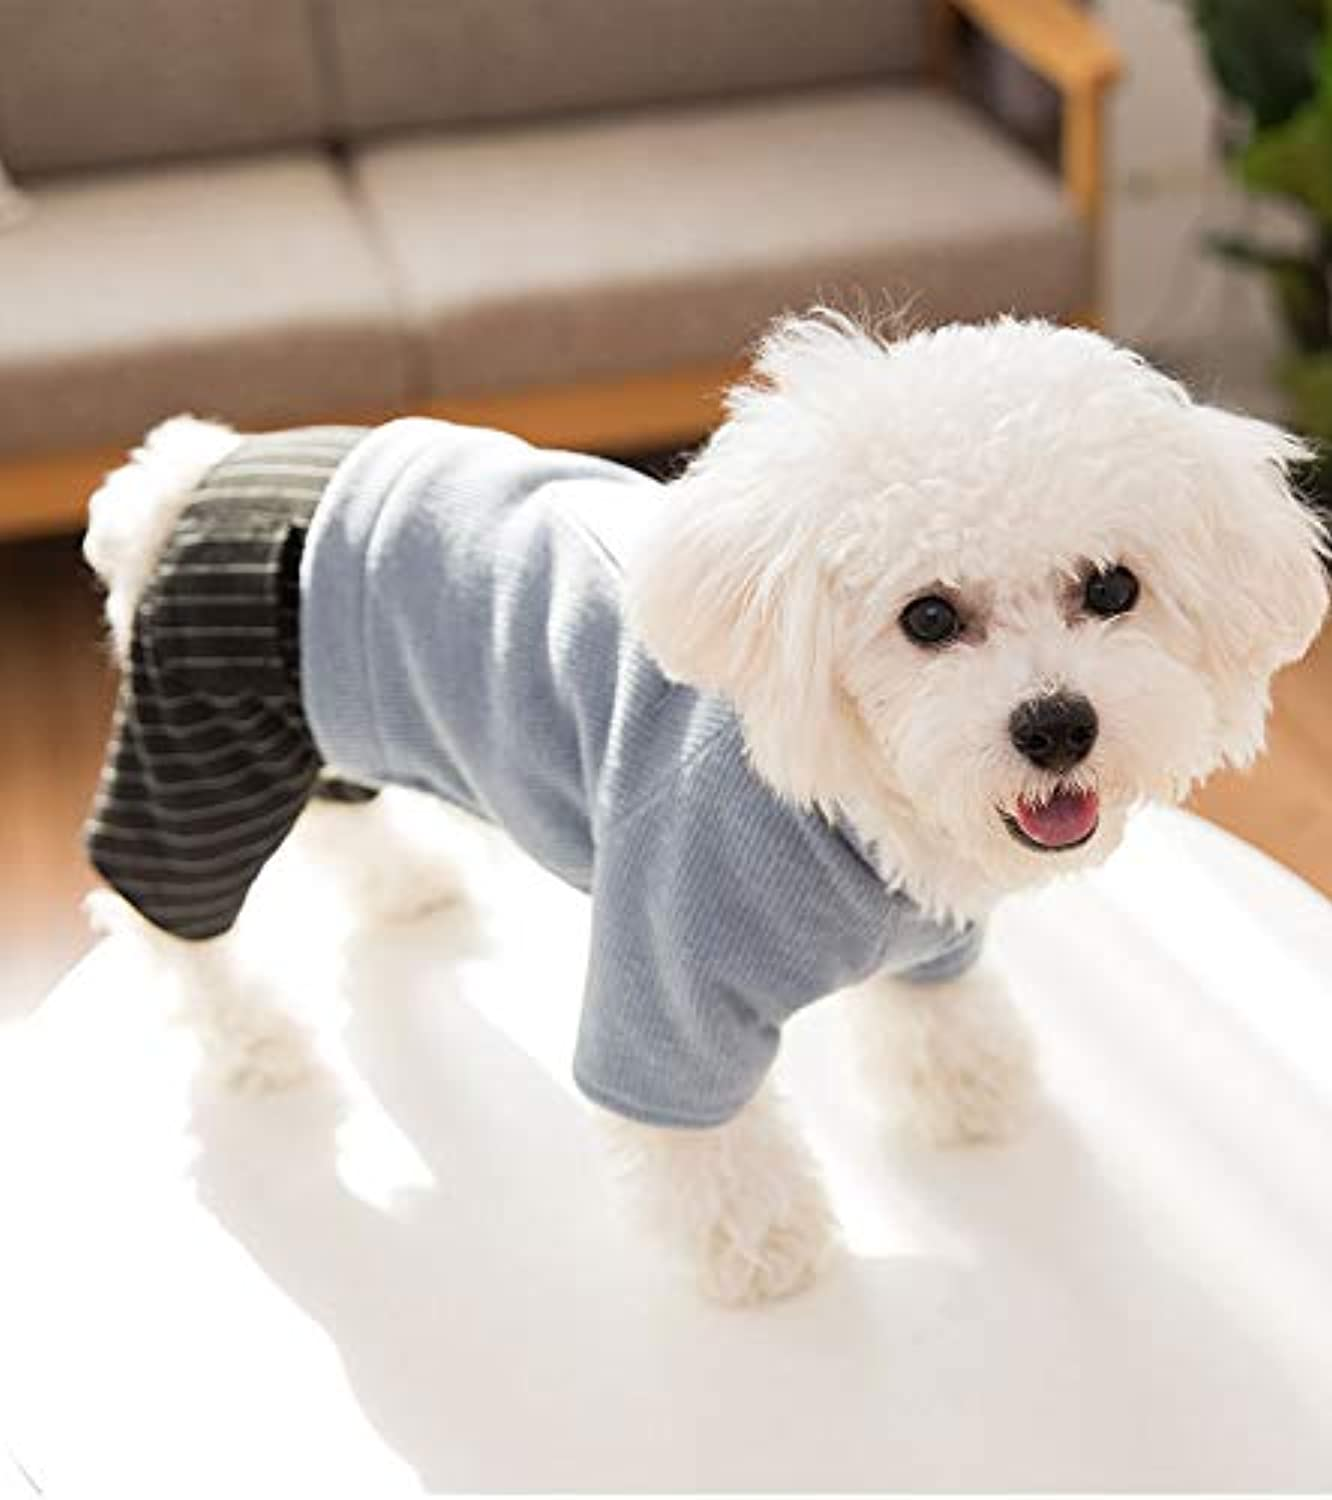 Ferza PetSuppliesMisc New Japan and South Korea dog clothes autumn and winter Teddy Bomi than bear cotton coat small dog pet clothing fourlegged clothes winter (color   bluee, Size   L)